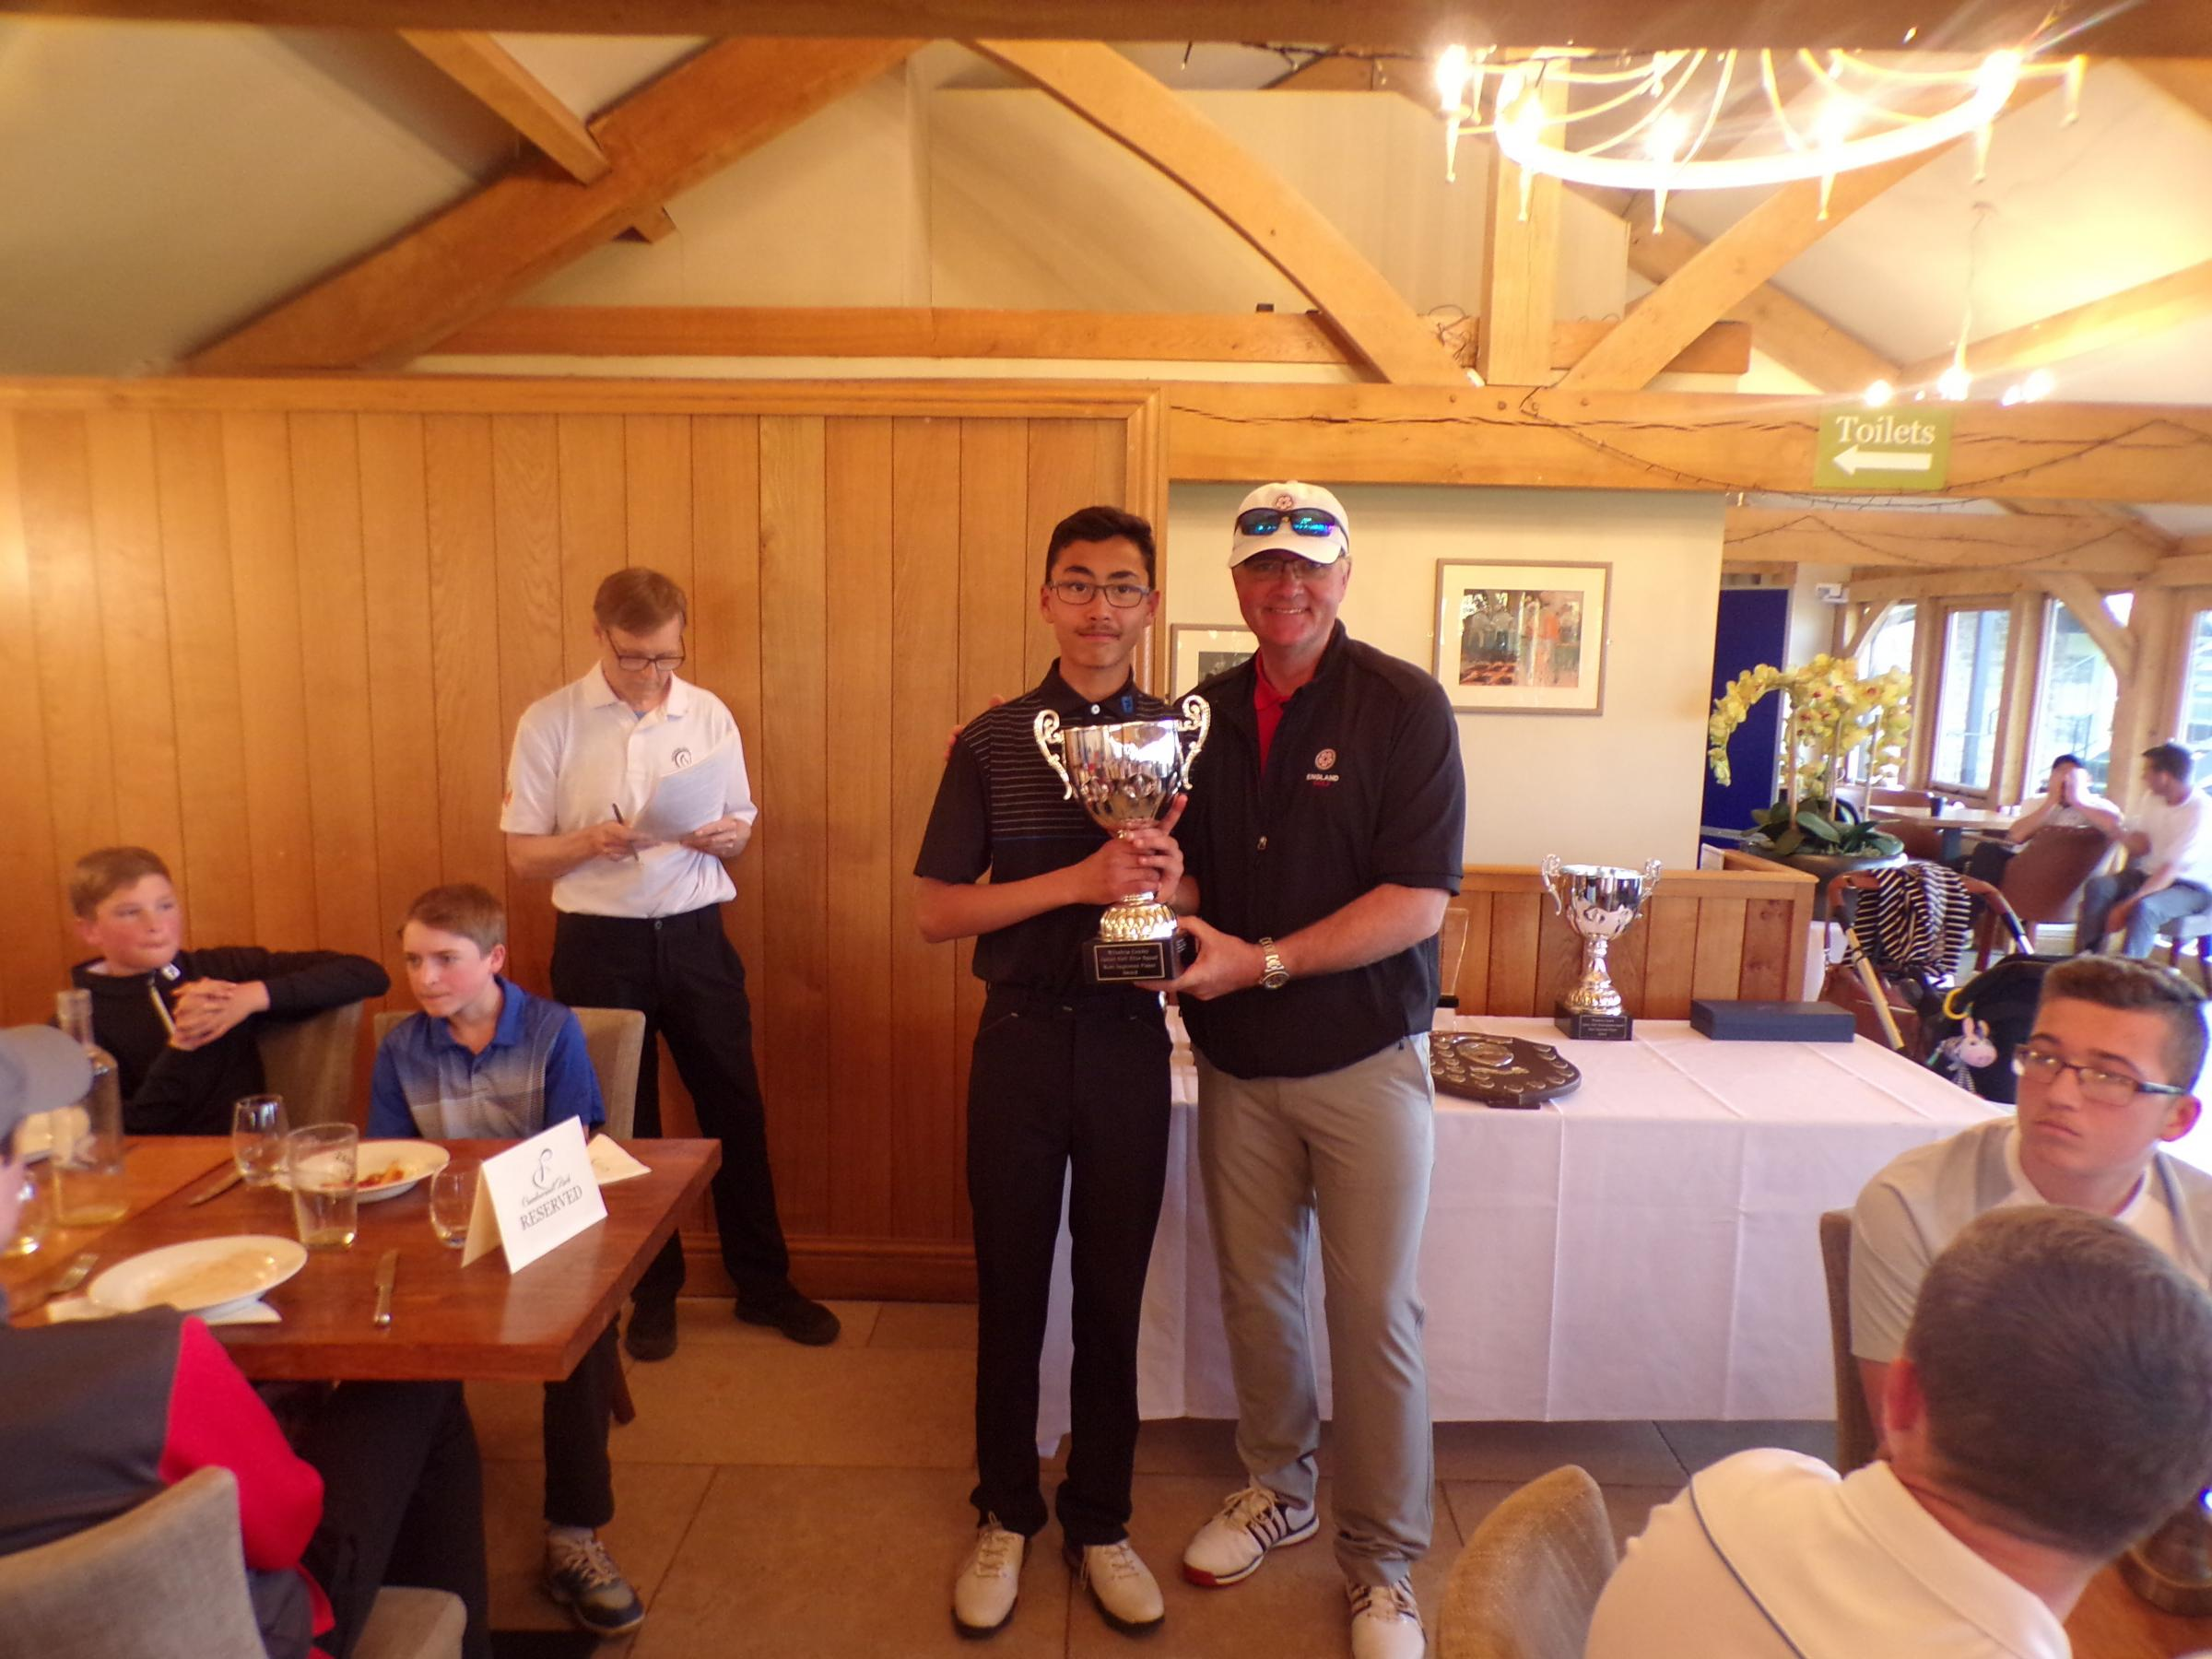 Callum Bygrave was the most improved player in the Wiltshire Junior Golf elite squad